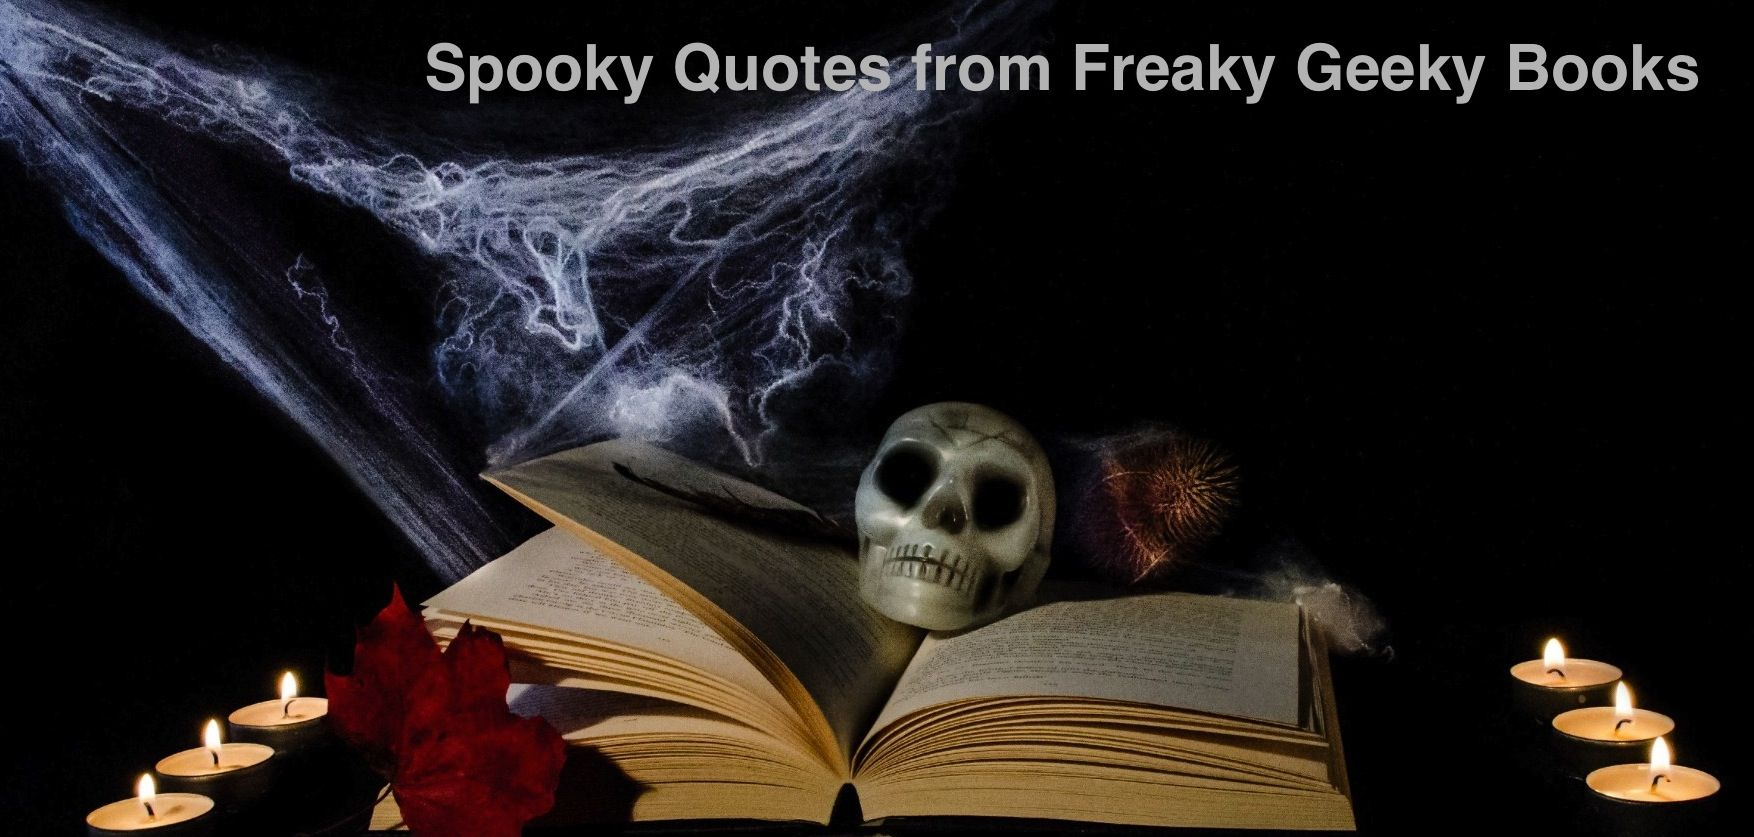 Hereu0027s A Collection Of Spooky Book Quotes Perfect For Halloween Night.